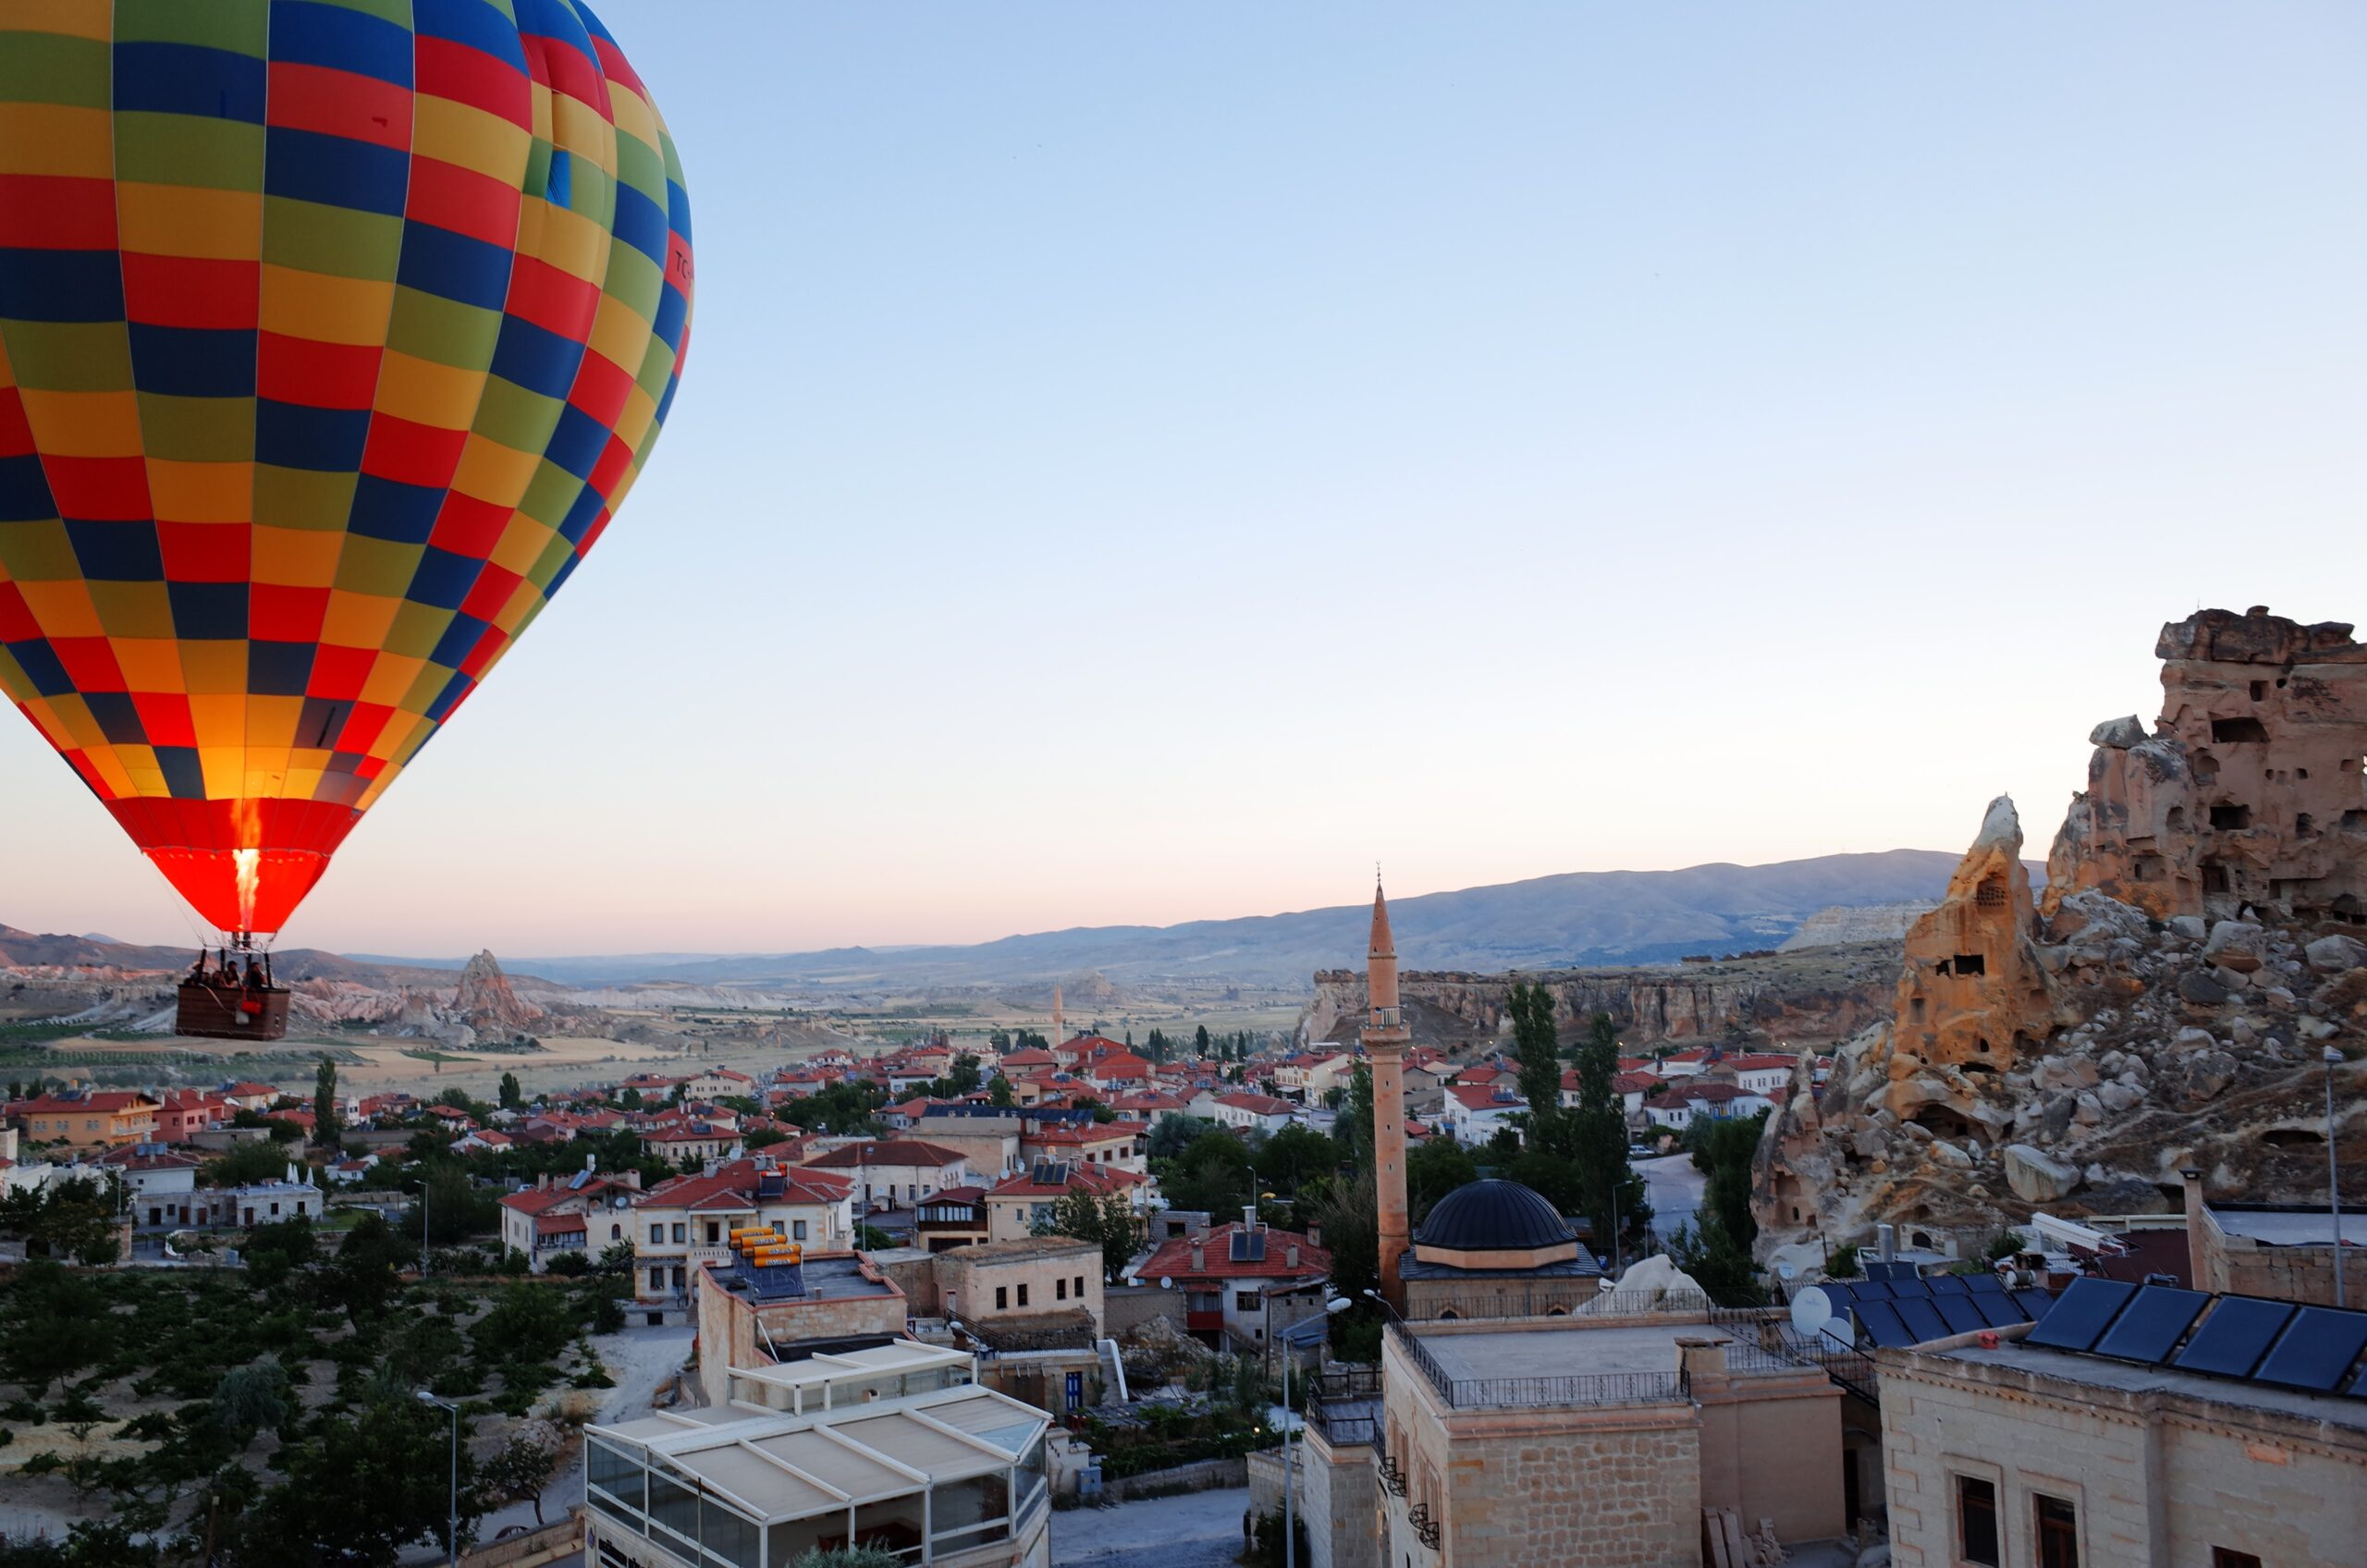 top 10 locations on my interrail bucket list summer 2021 cappadocia turkey hot air balloon